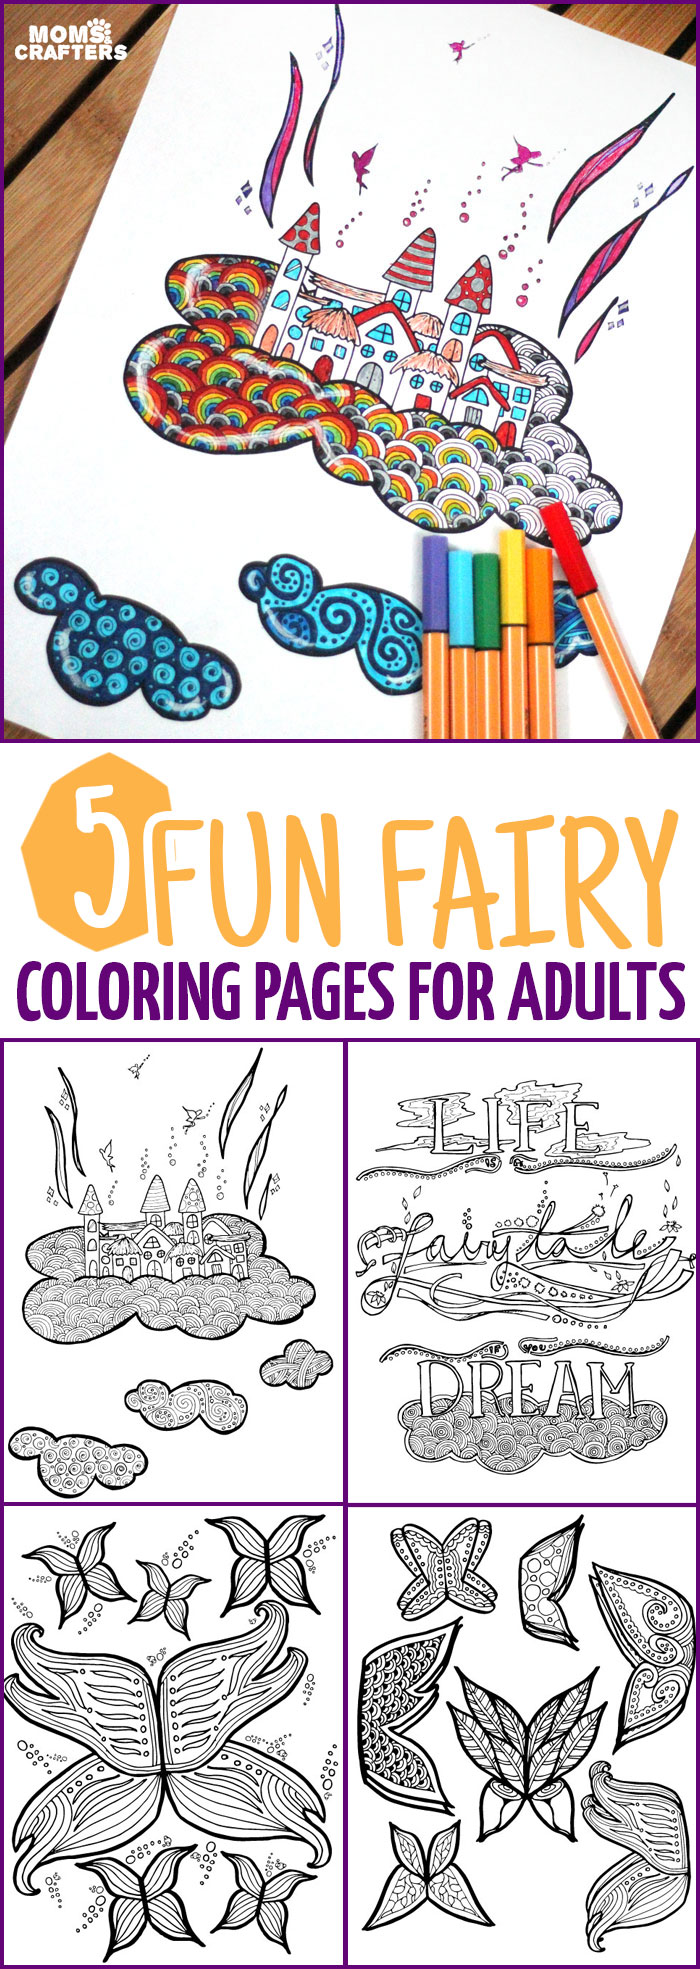 5 Fairy Coloring Pages for Adults! - Moms and Crafters